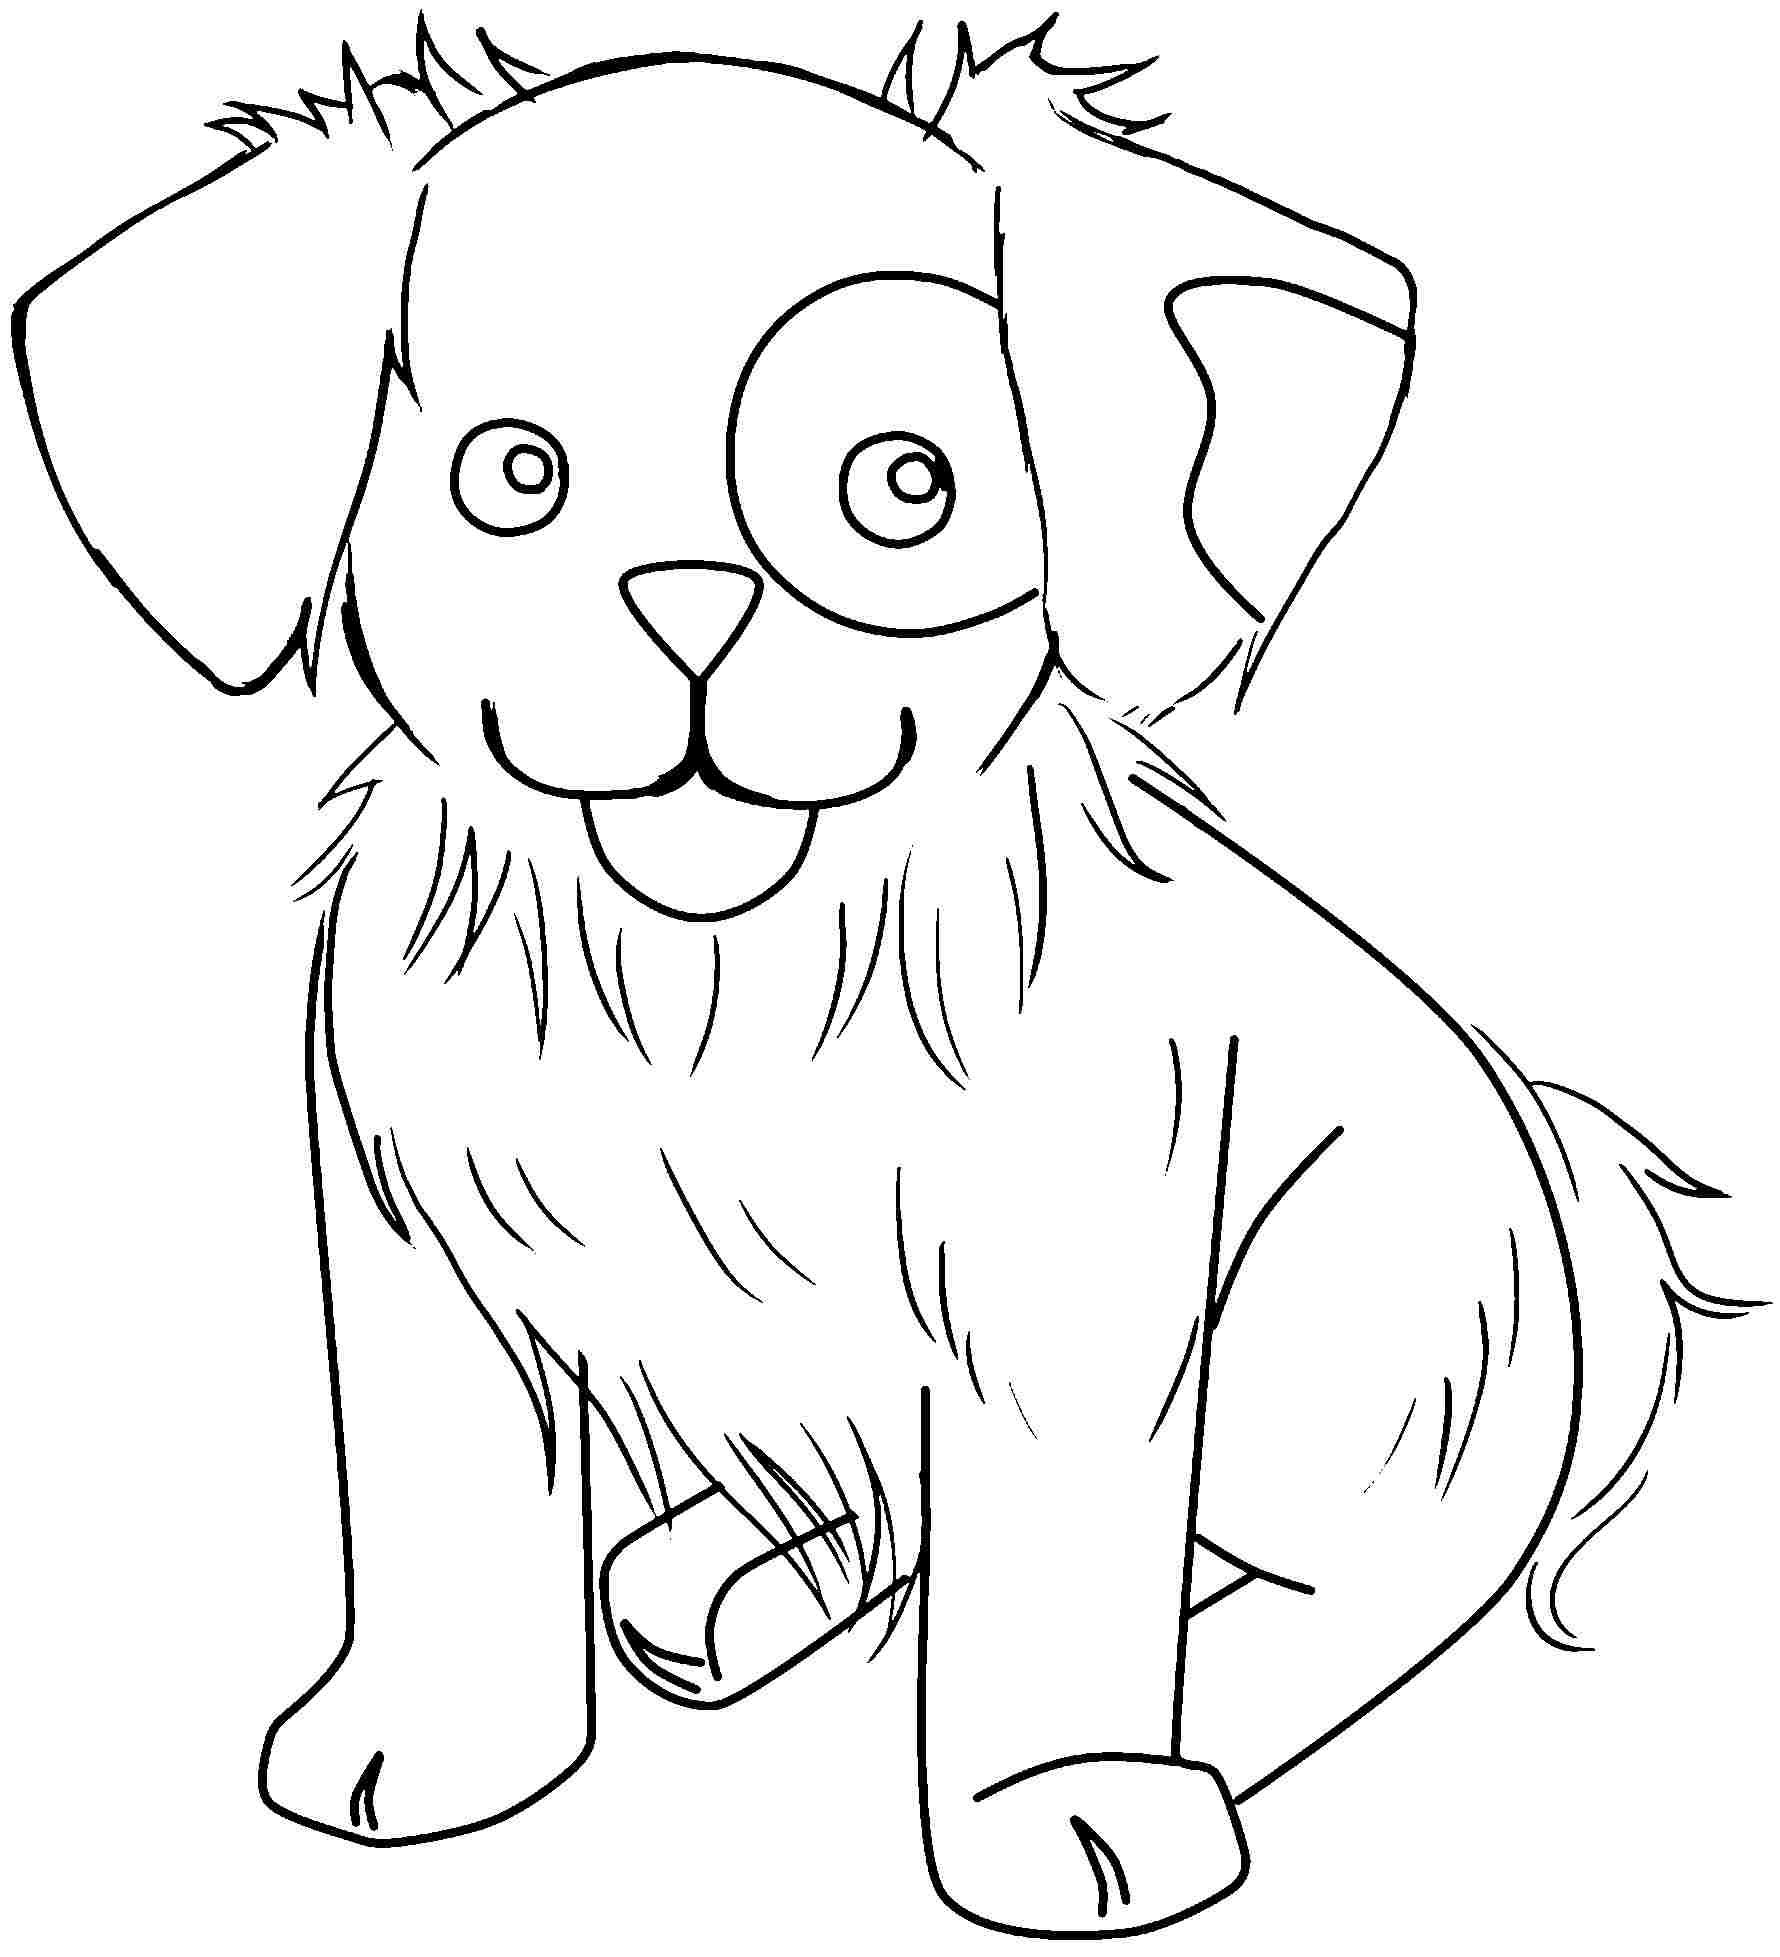 1780x1957 Direct Printable Picture Of A Dog Coloring Pages Gif Cute Dogs